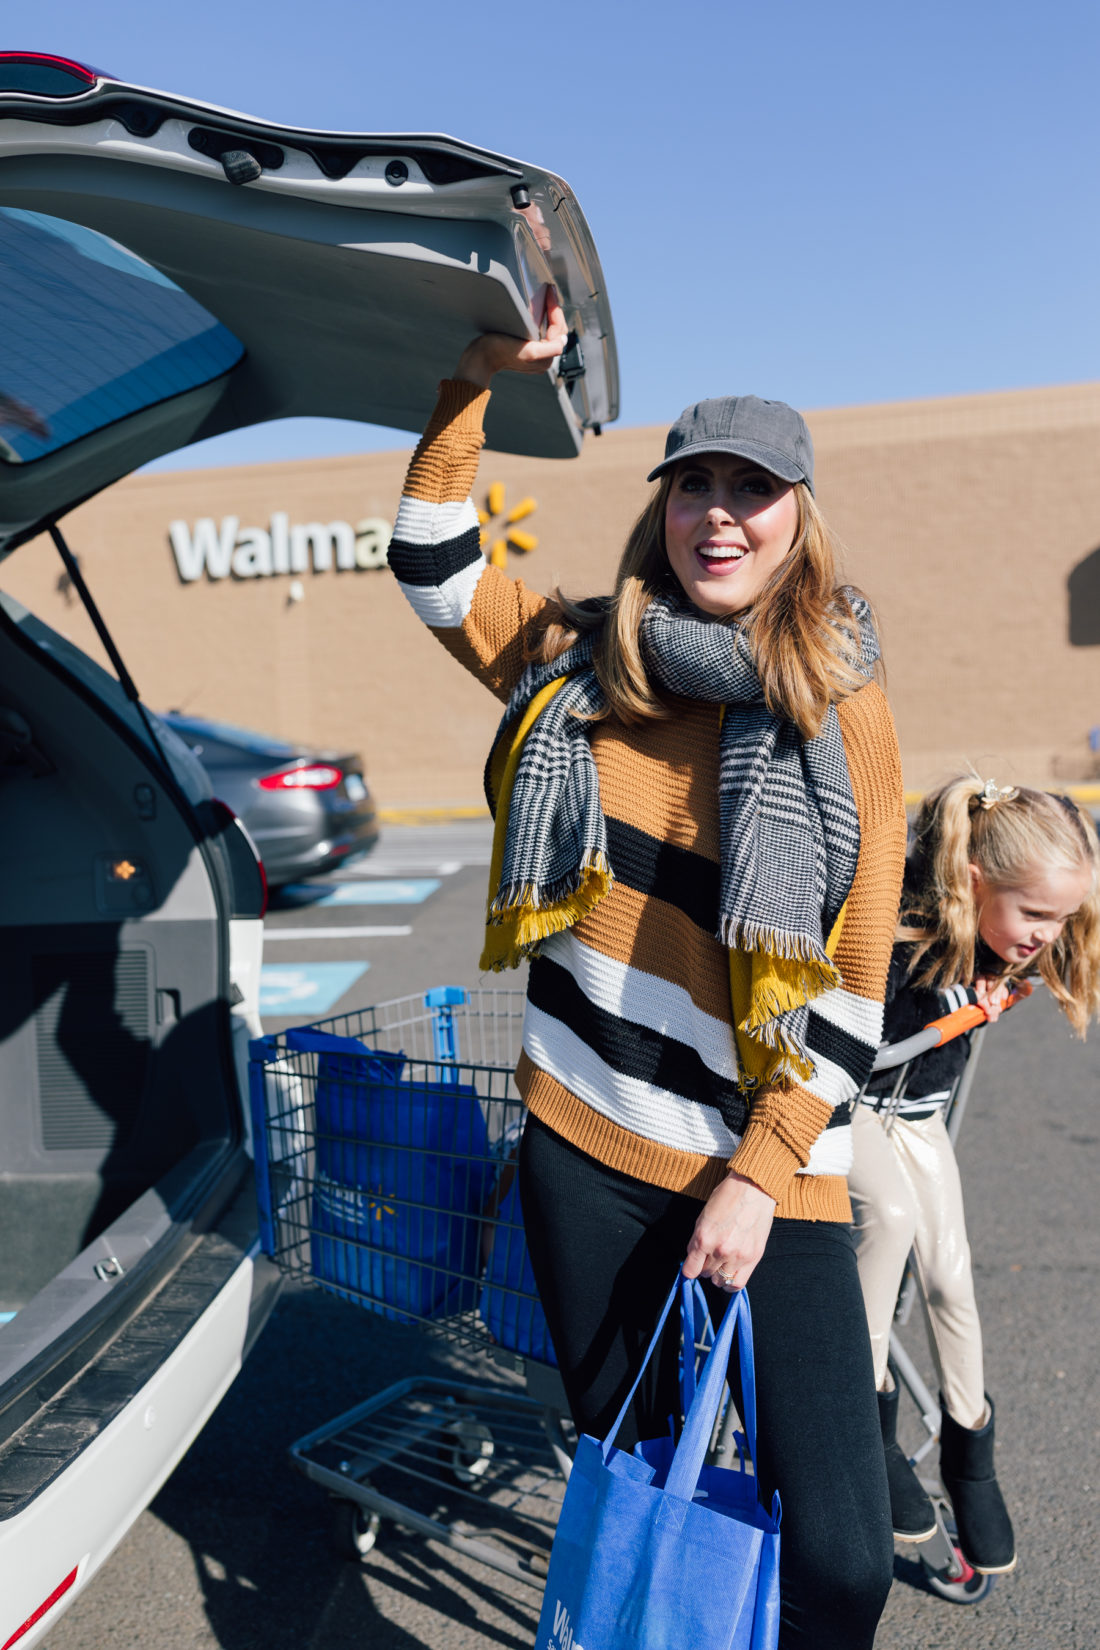 Eva Amurri Martino loads up her Walmart purchases